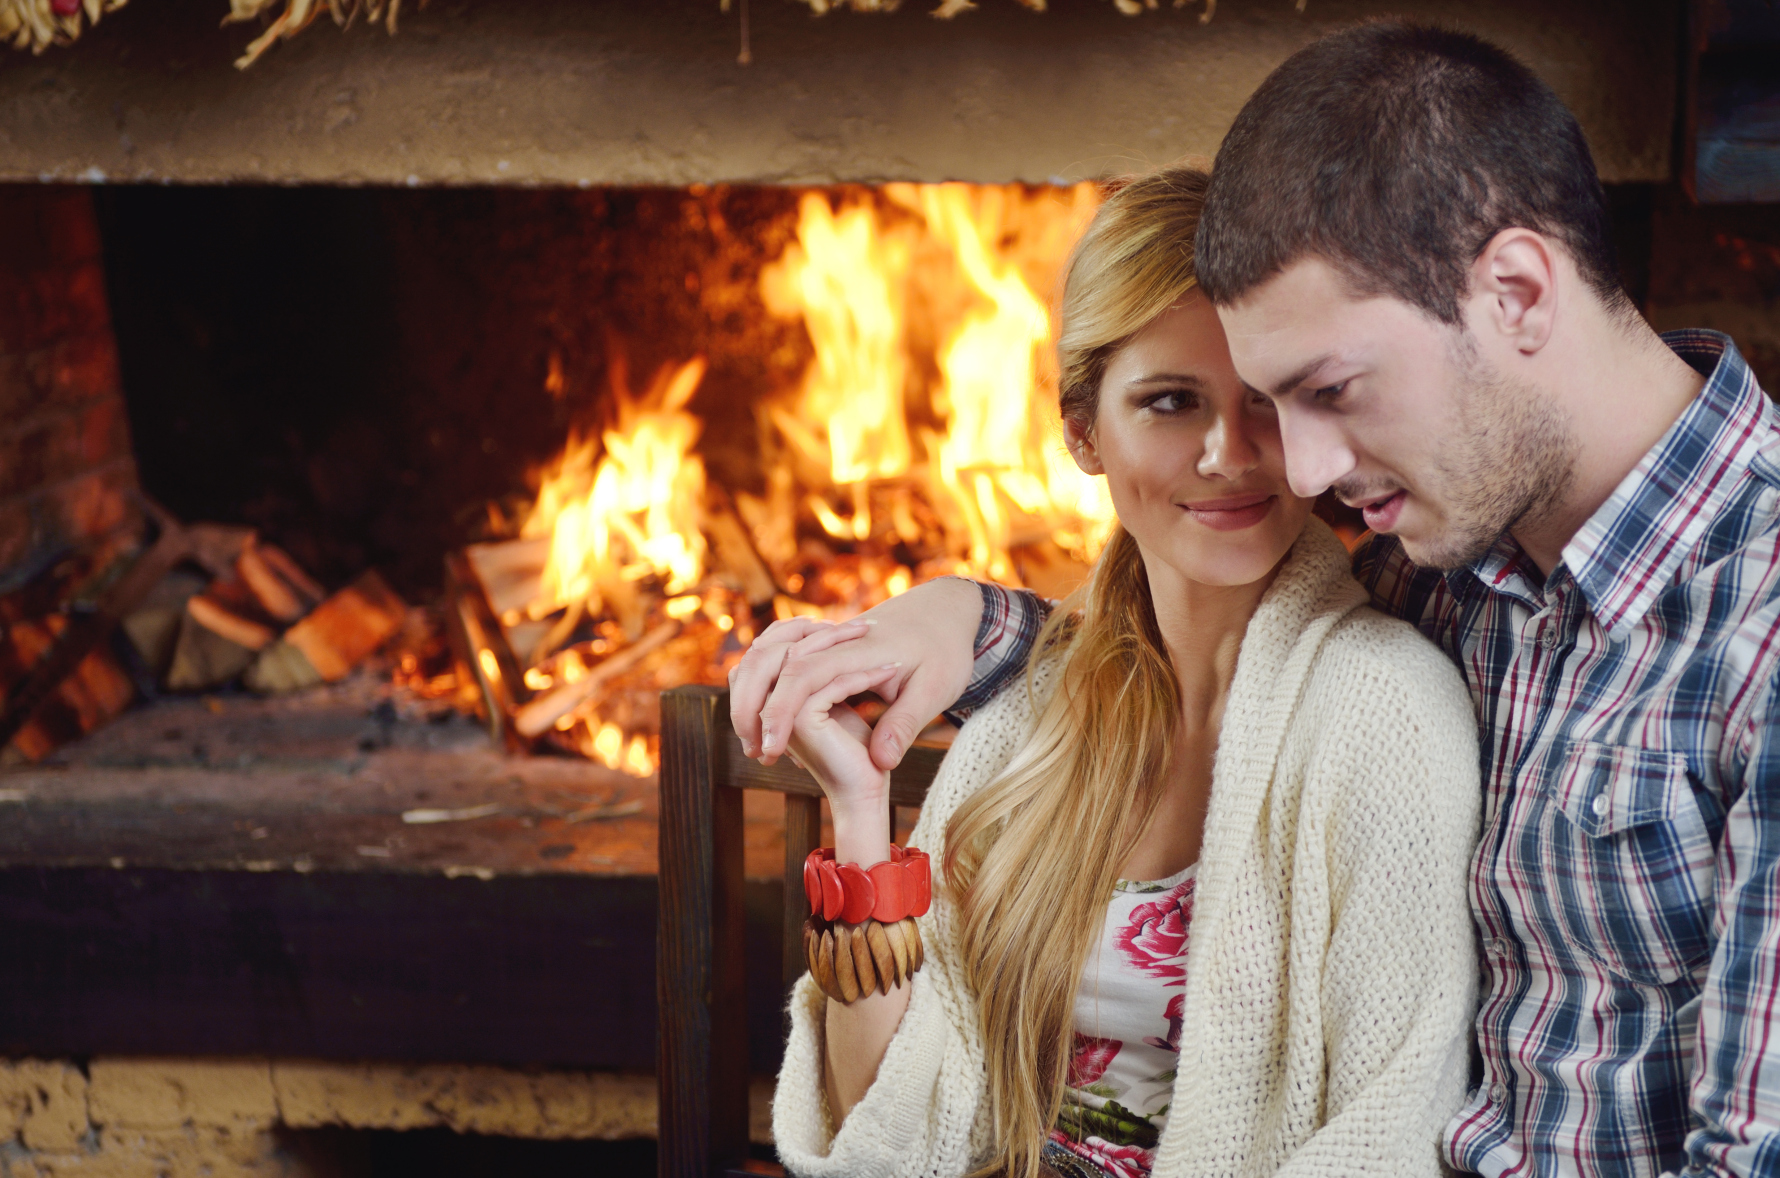 Kozzi-young_romantic_couple_sitting_and_relaxing_in_front_of_fireplace-1780x1179